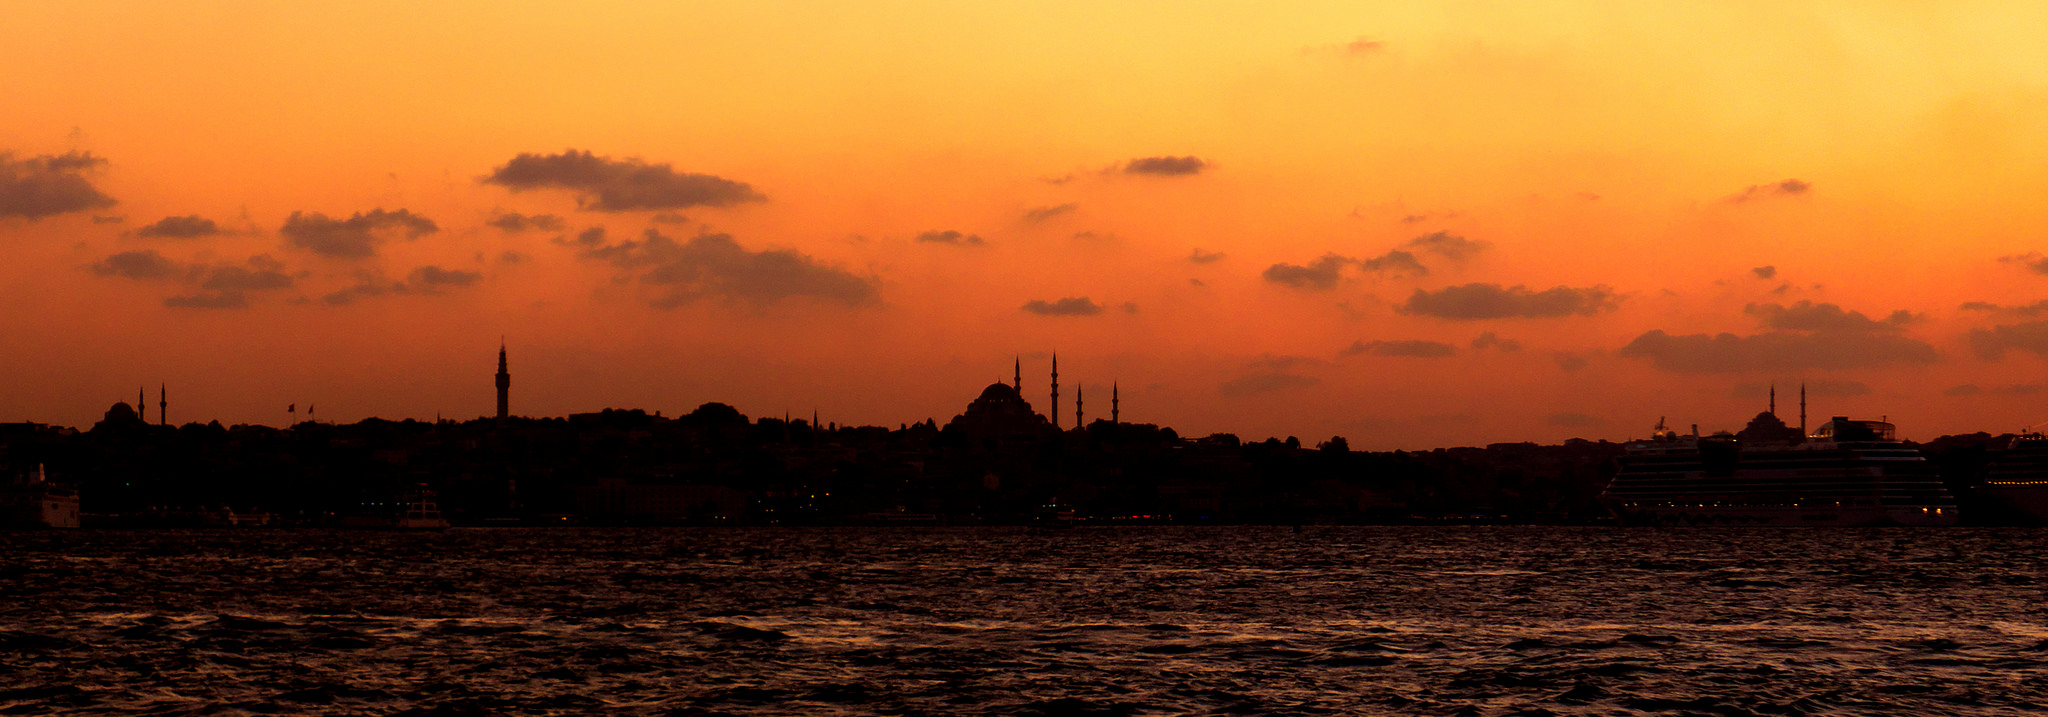 Istanbul by B Lucava, on Flickr